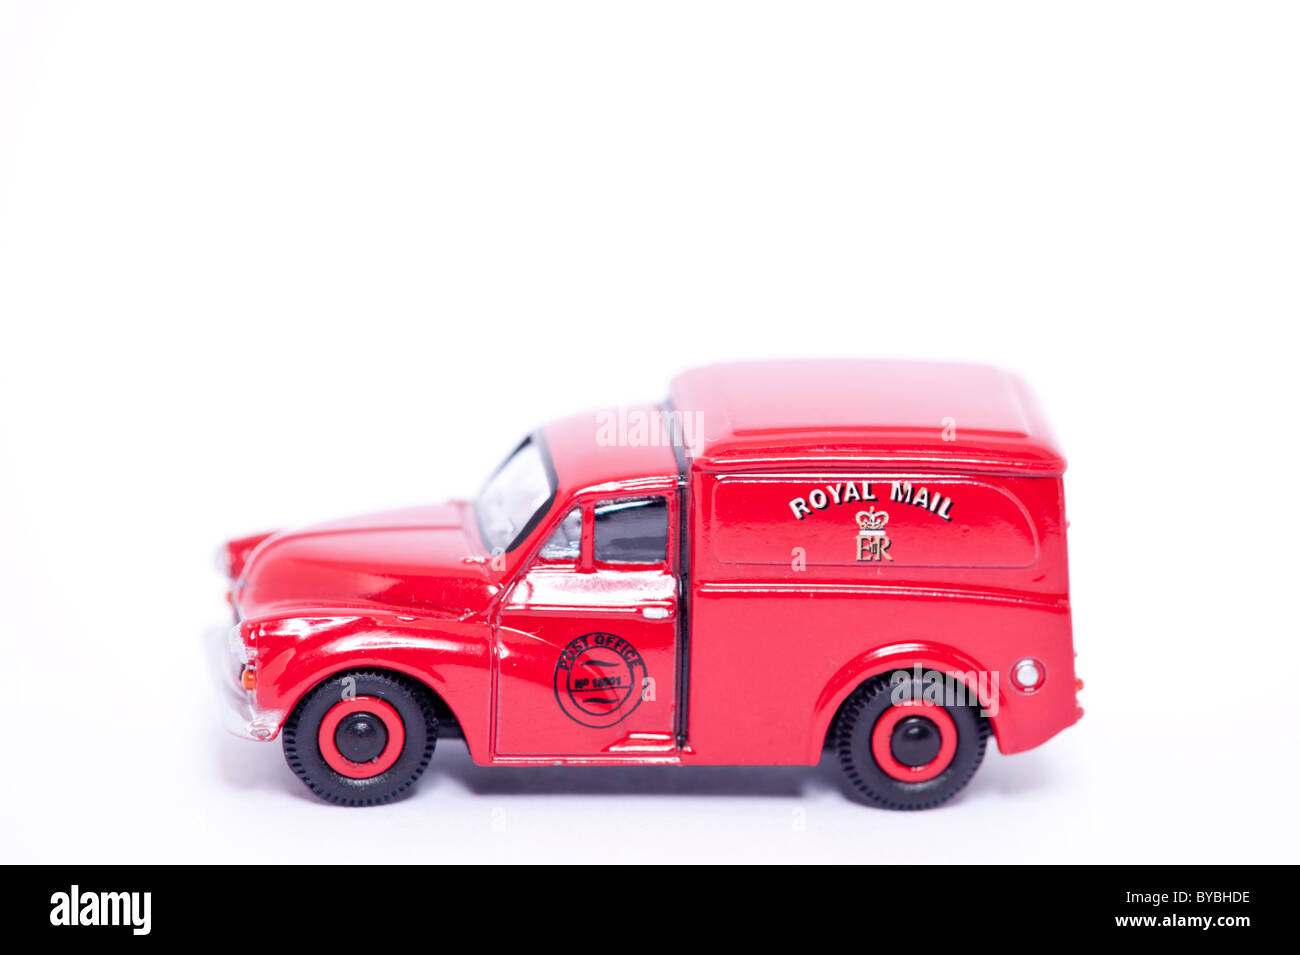 A toy model old fashioned Royal Mail post van on a white background - Stock Image